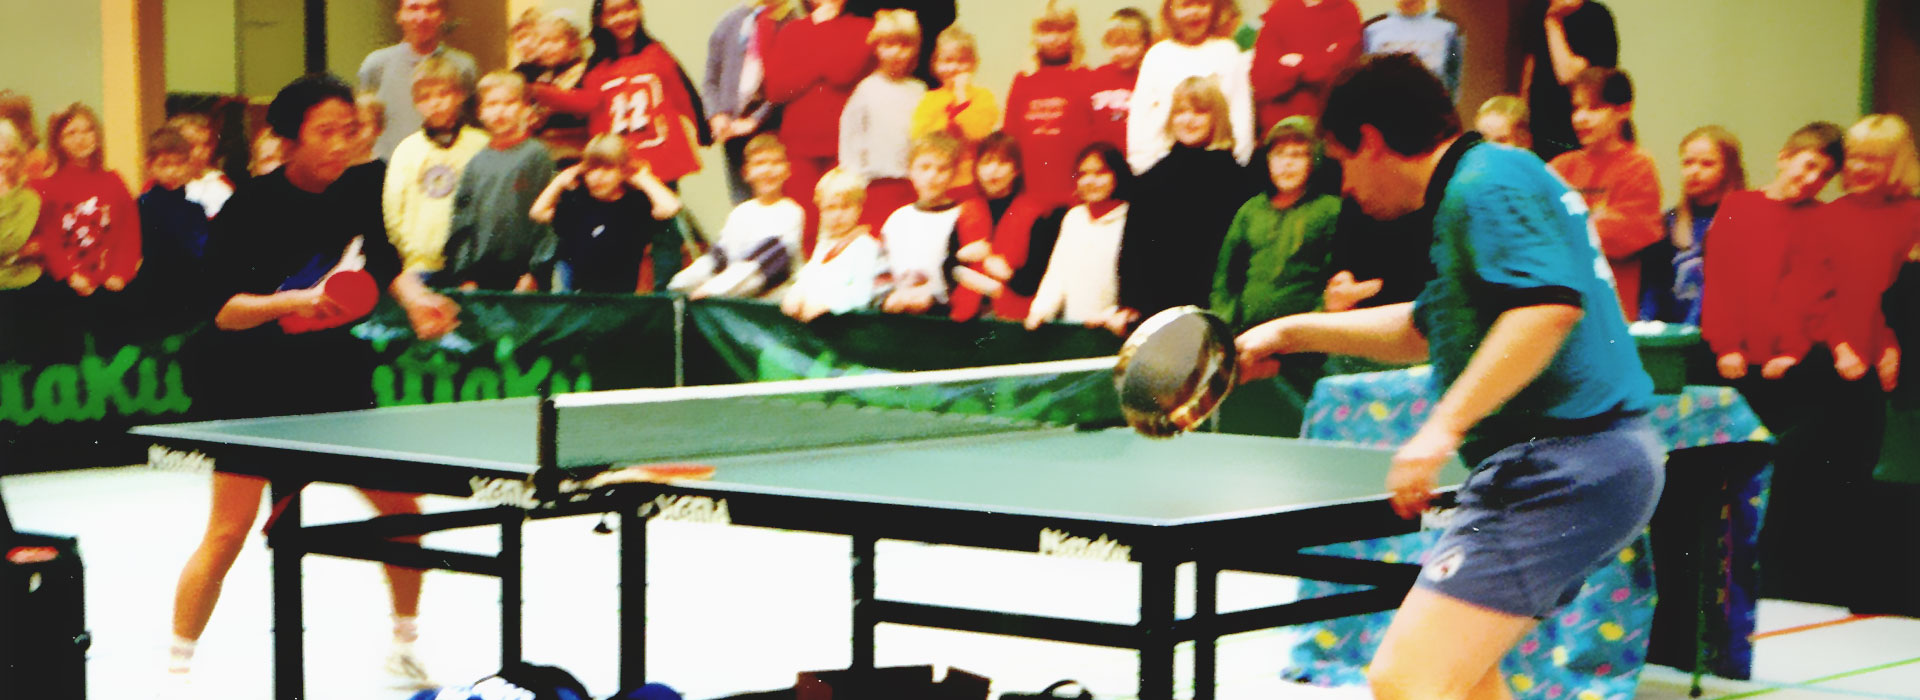 Tischtennis-Institut Thomas Dick - Spaß Demos